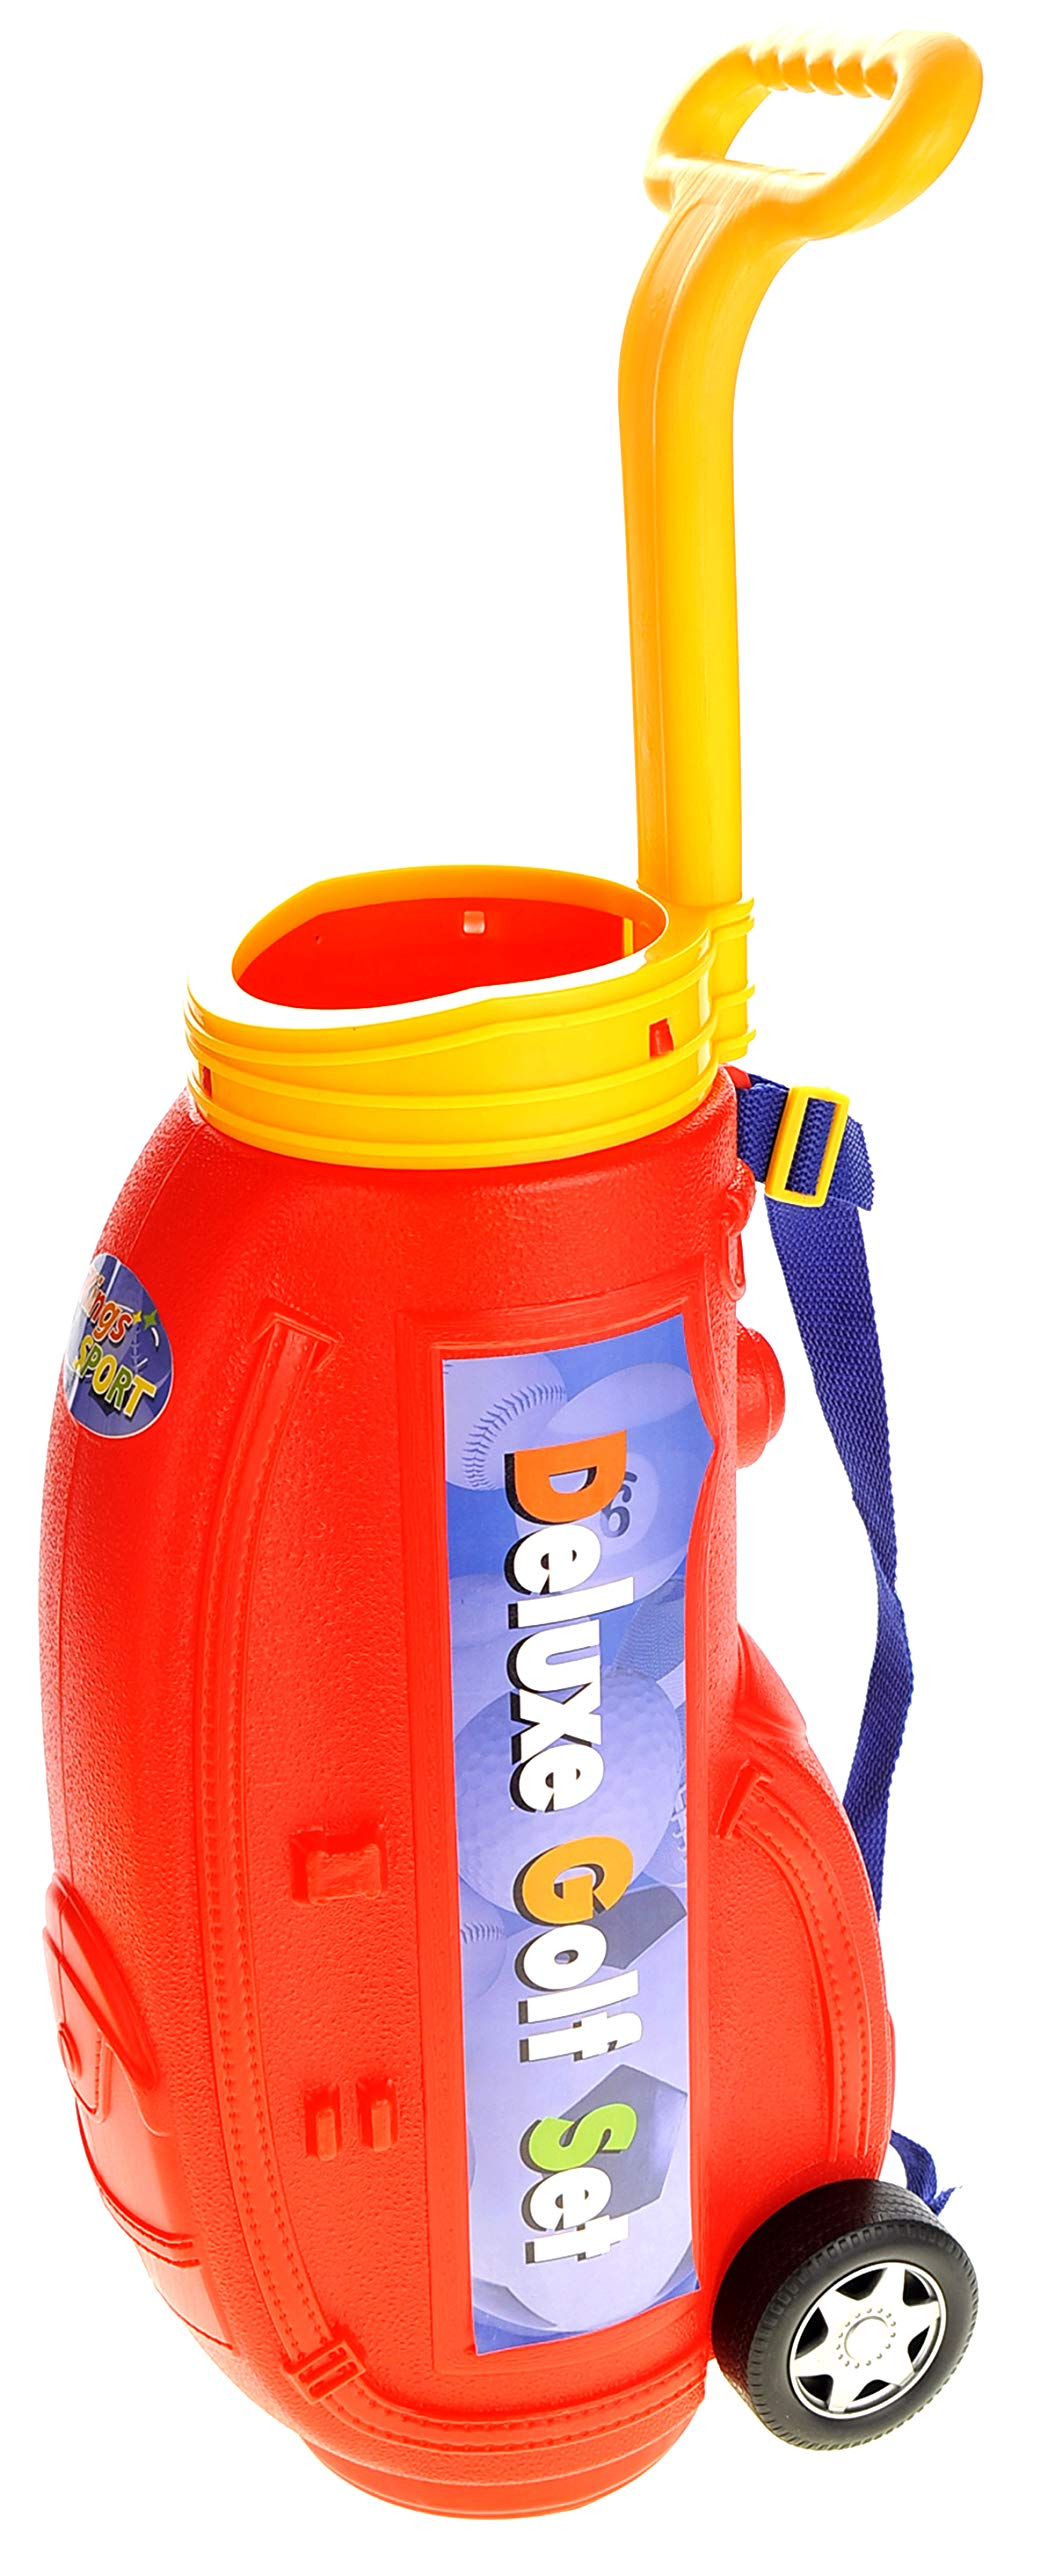 PowerTRC Deluxe Golf Play-Set for Kids w/ Easy Storage by PowerTRC (Image #6)